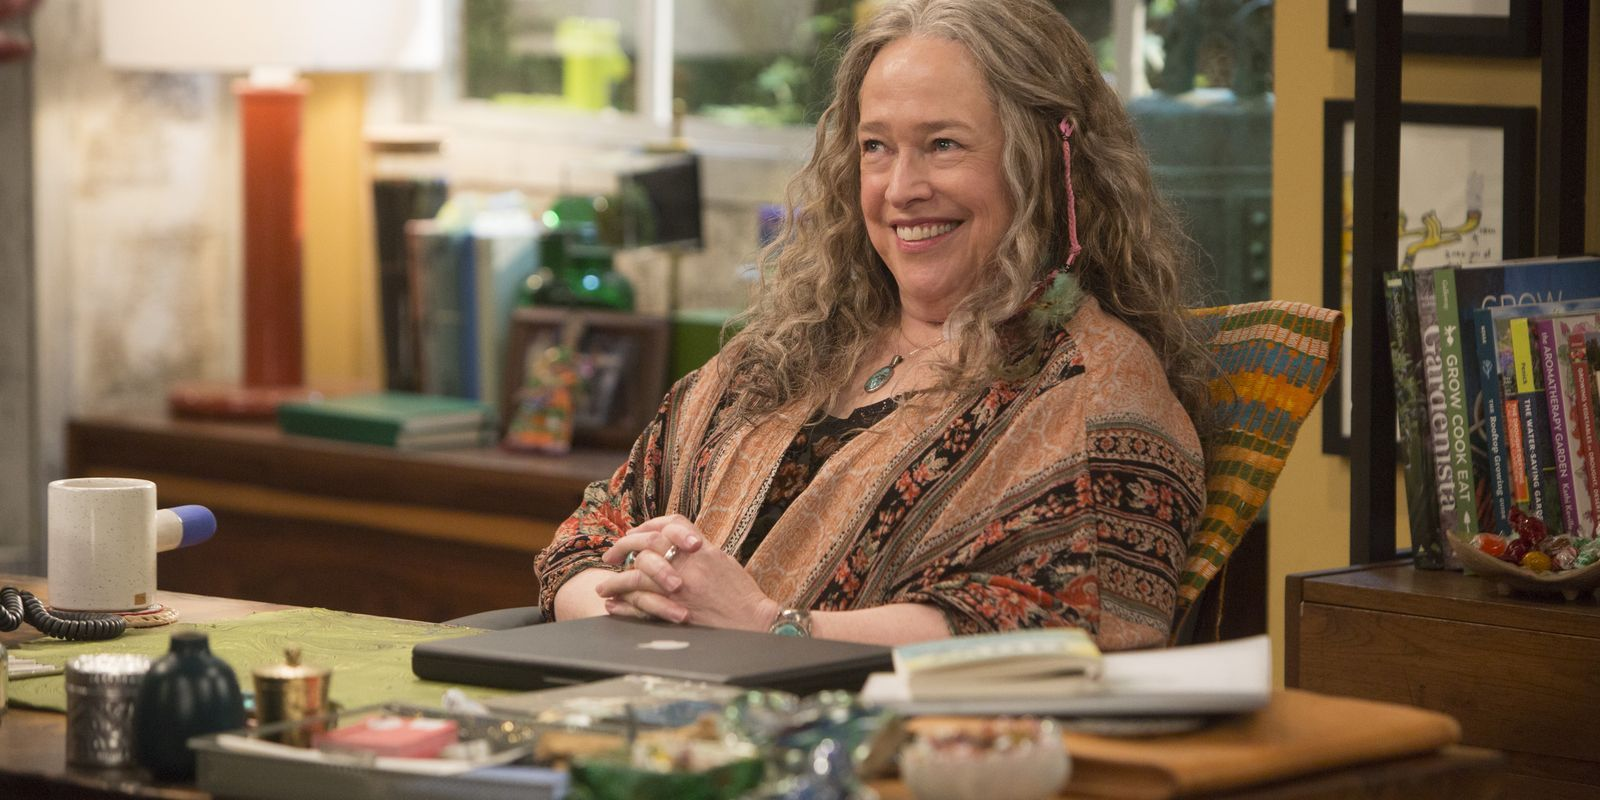 Kathy Bates stars in Netflix's Disjointed